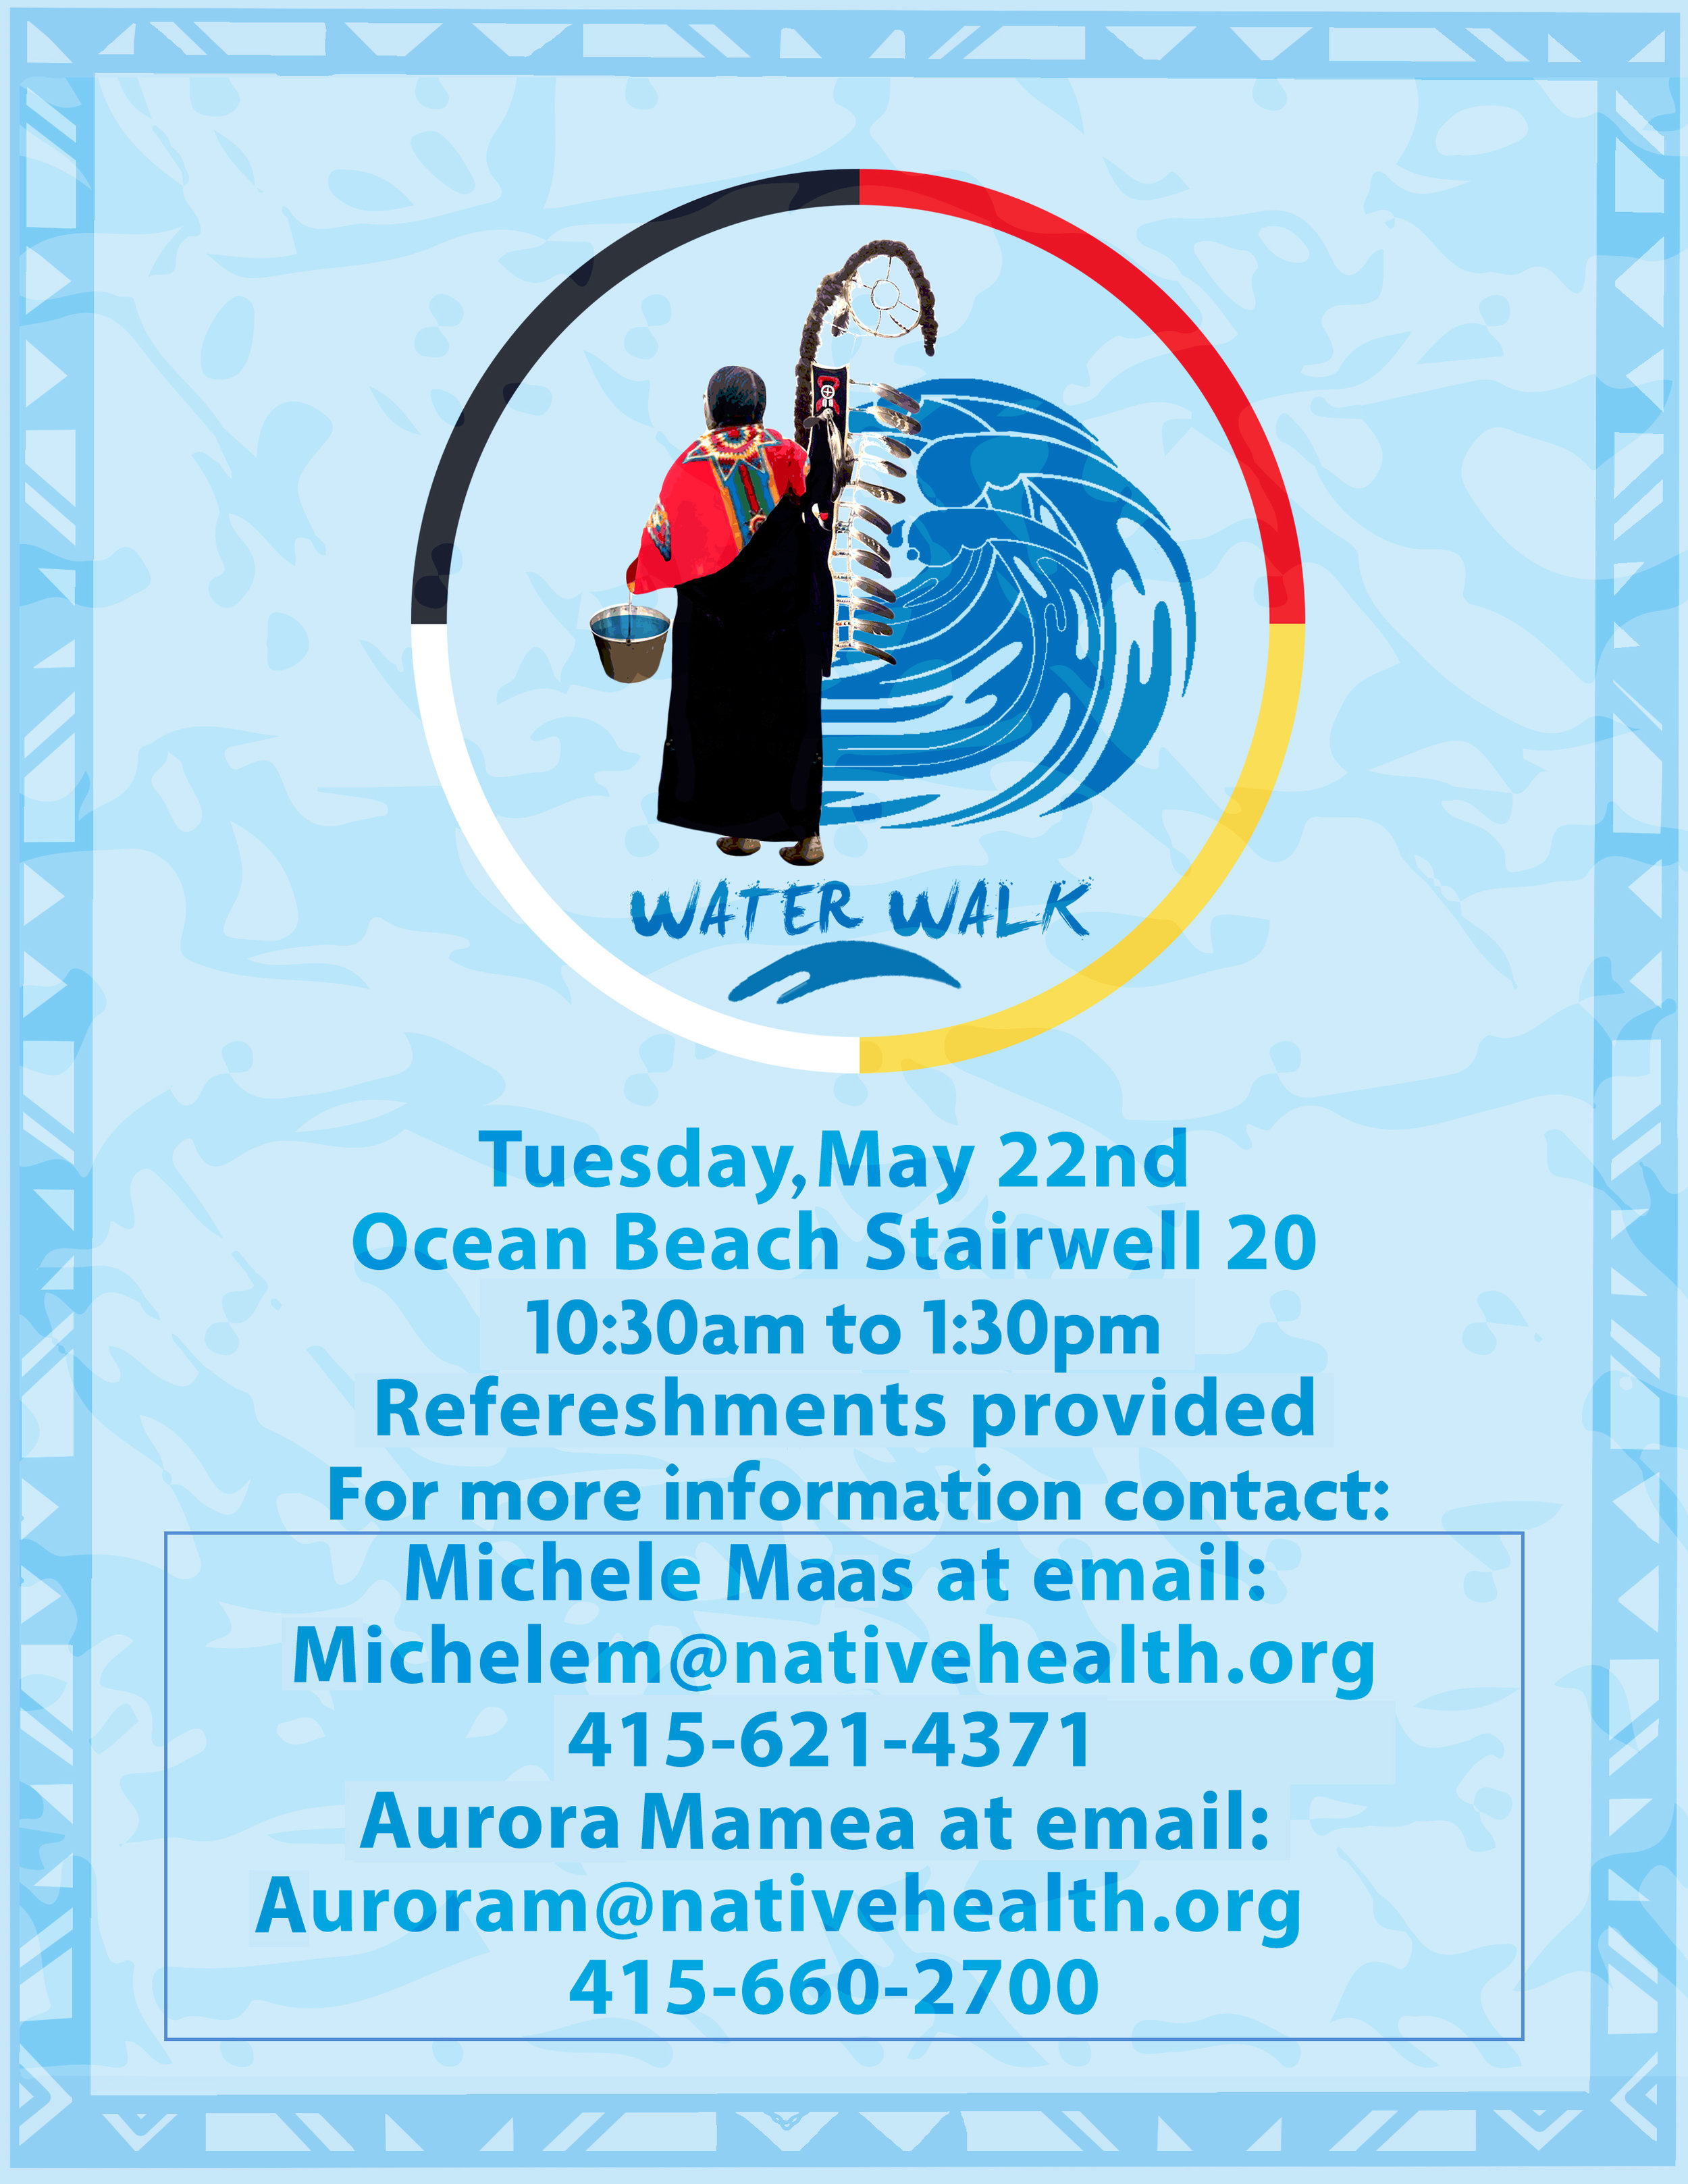 WaterwalkSF_flyer.jpg